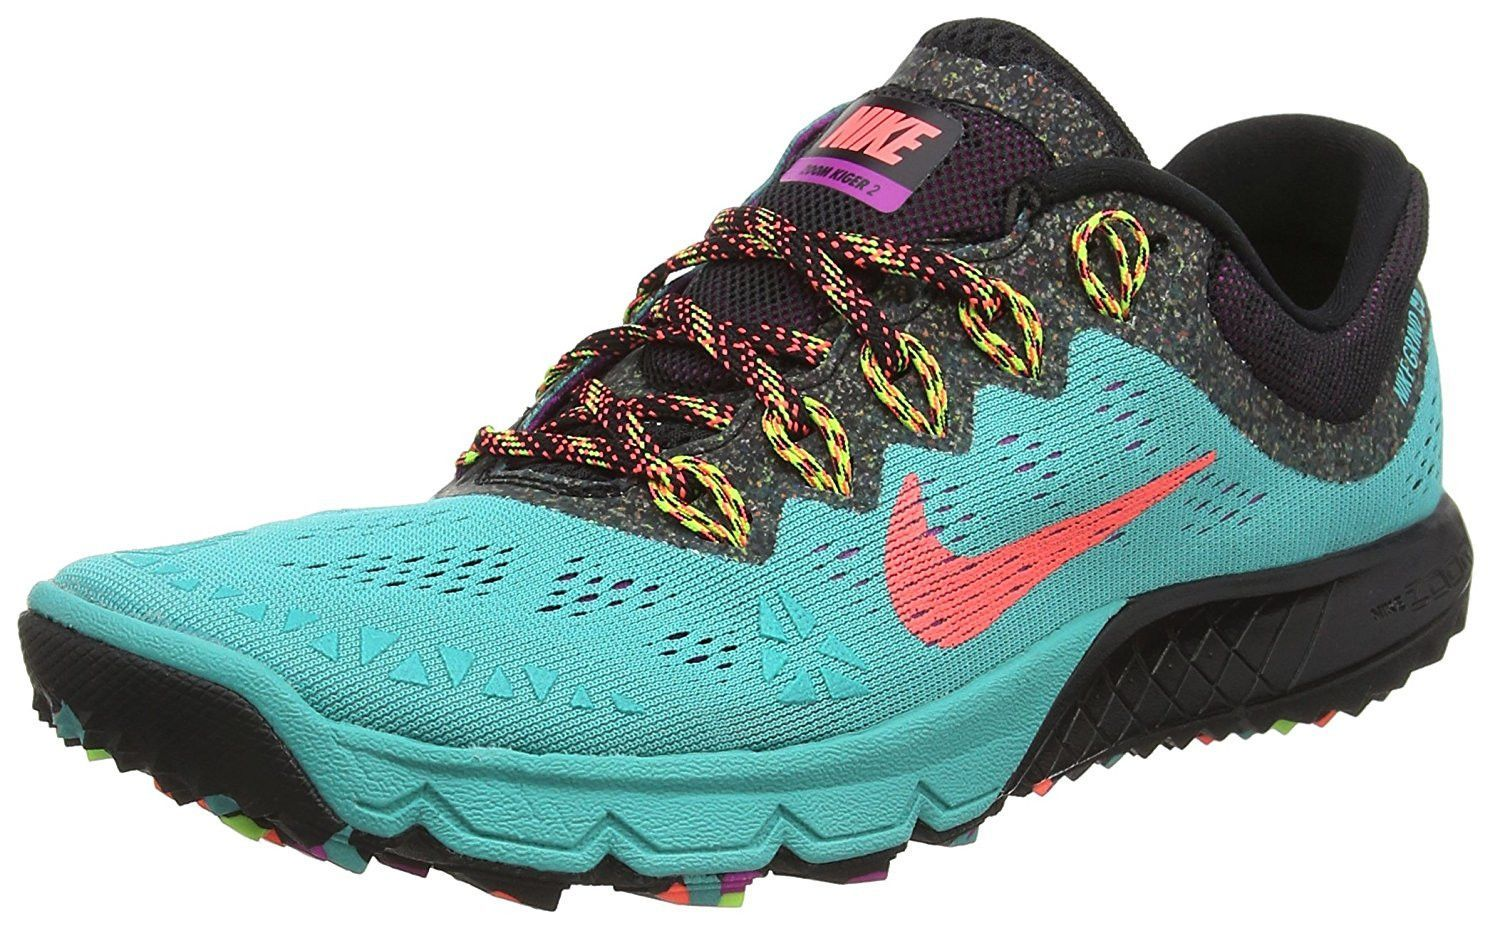 Nike Air Zoom Terra Kiger 2 Trail Running Shoes Womens Size 8 Retro Blue Lava Black Running Shoe Brands Womens Running Shoes Trail Running Shoes